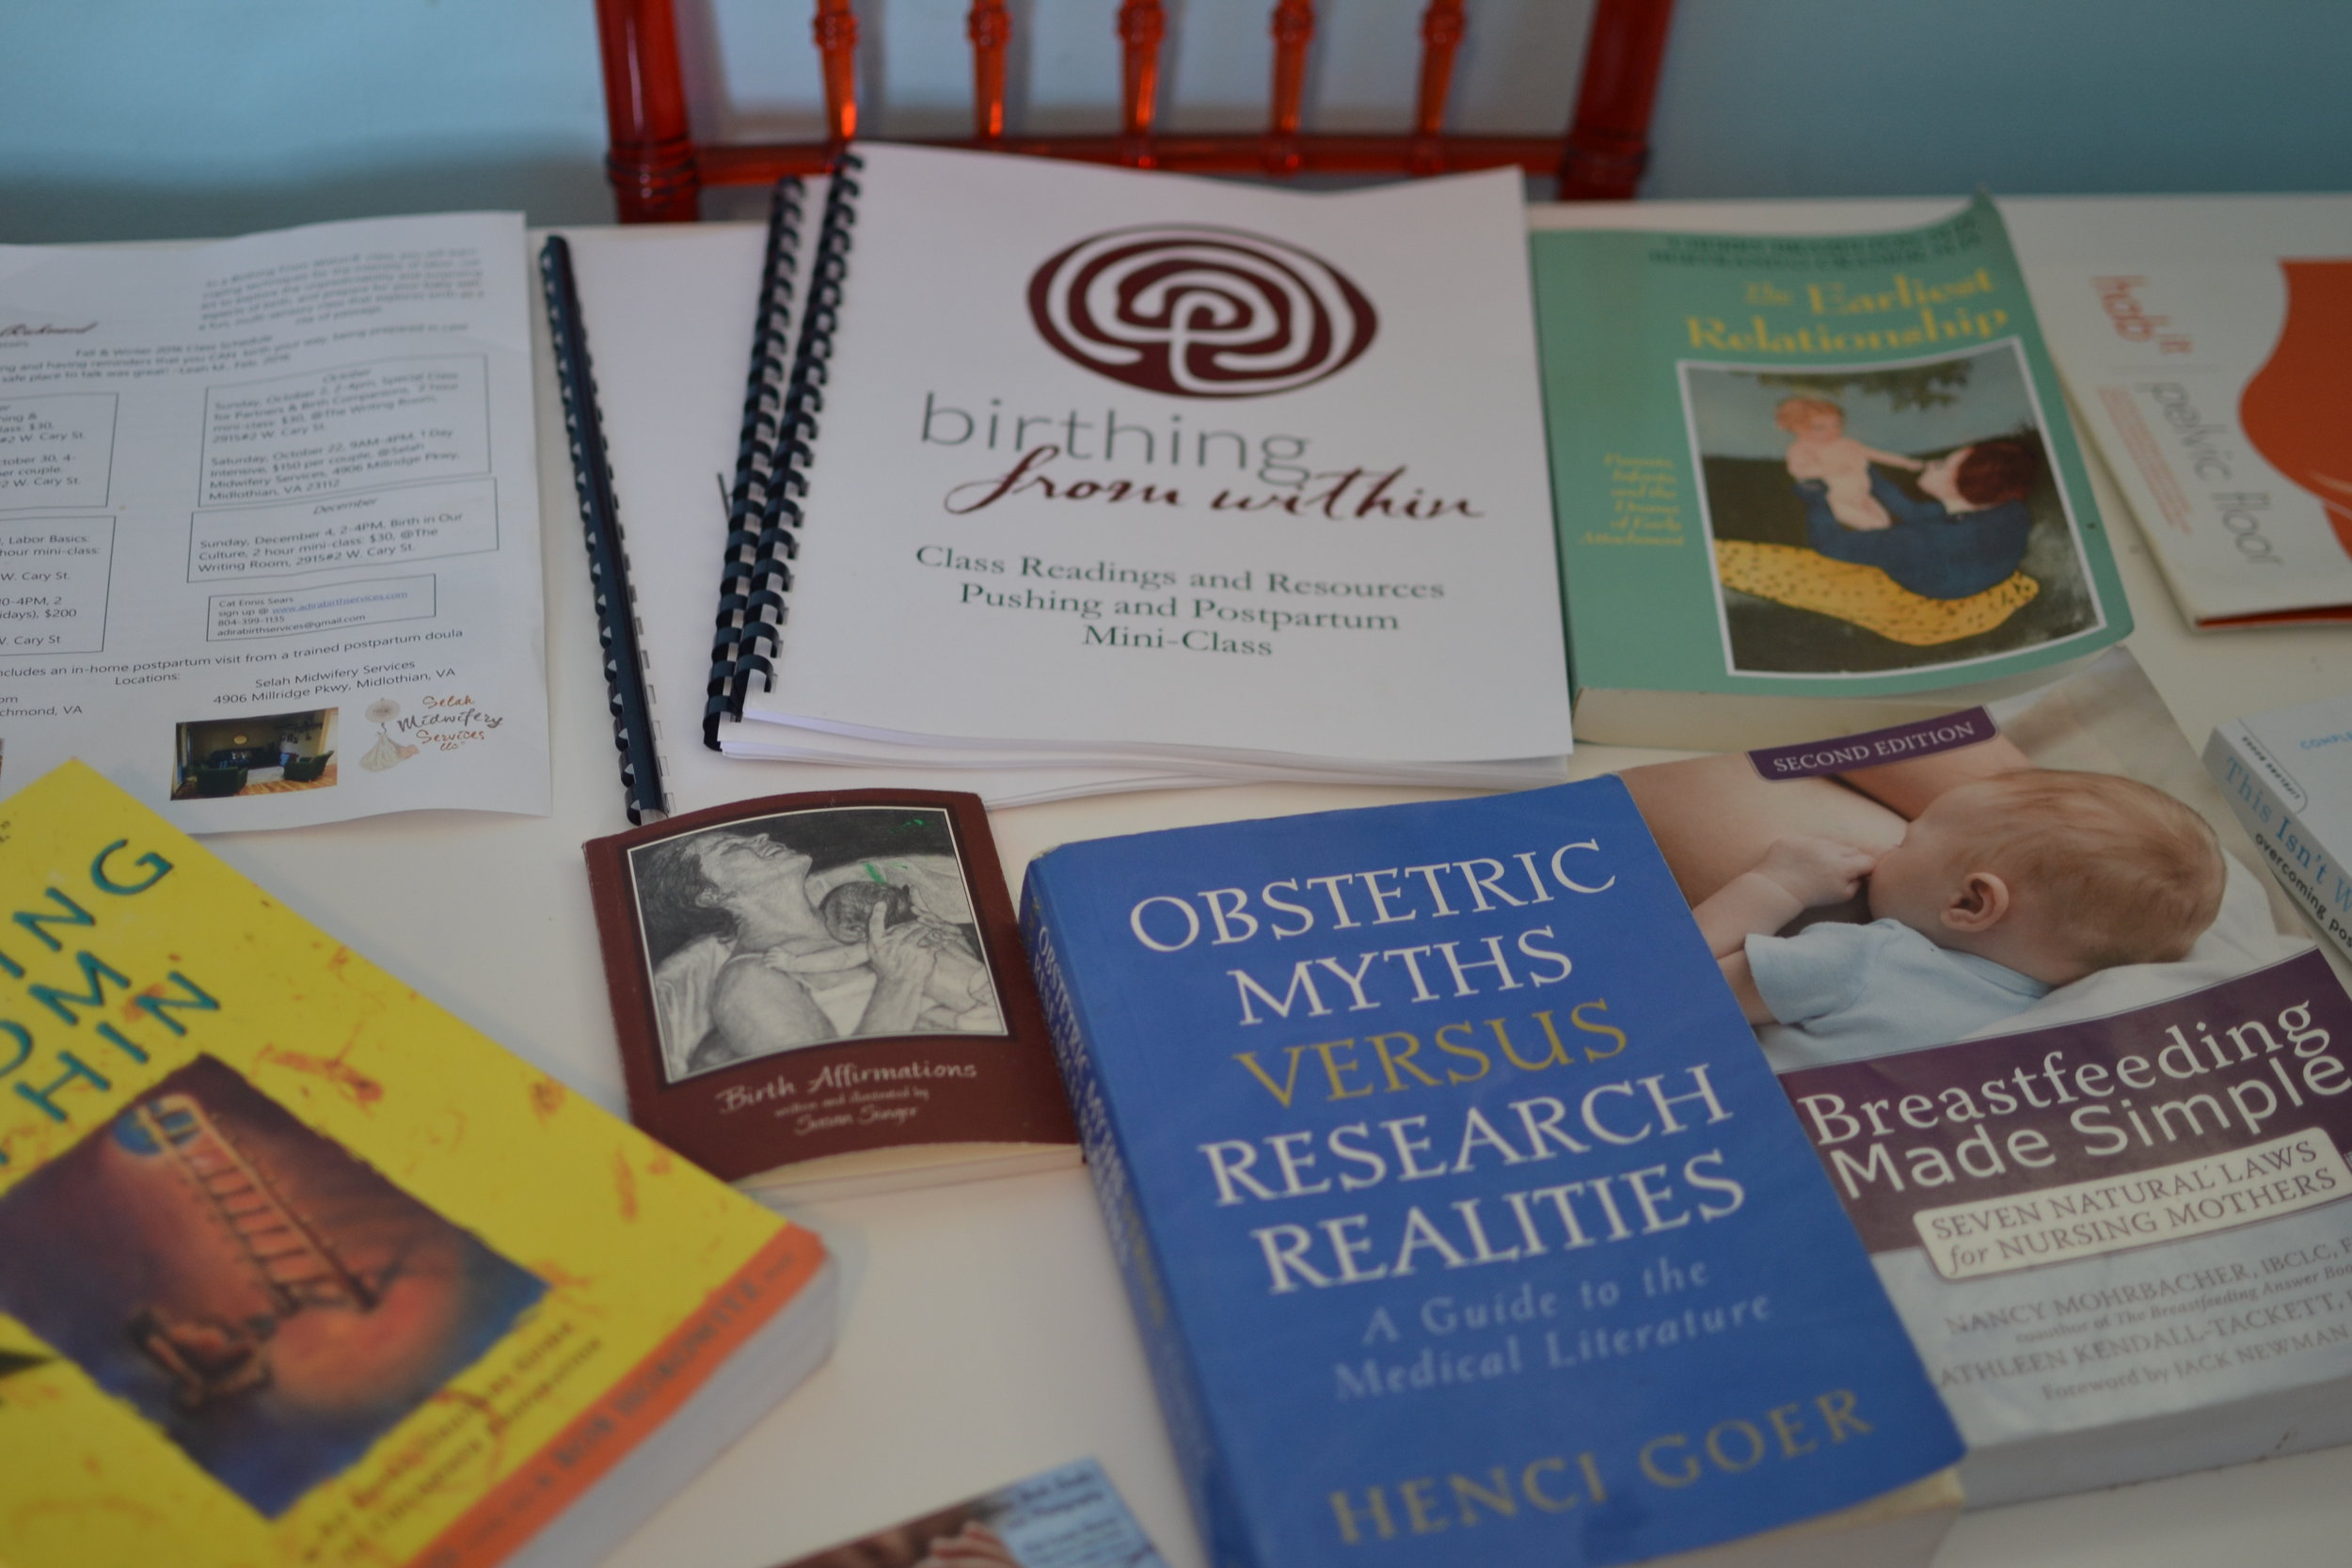 Articles, Handouts, and Access to Lending Library